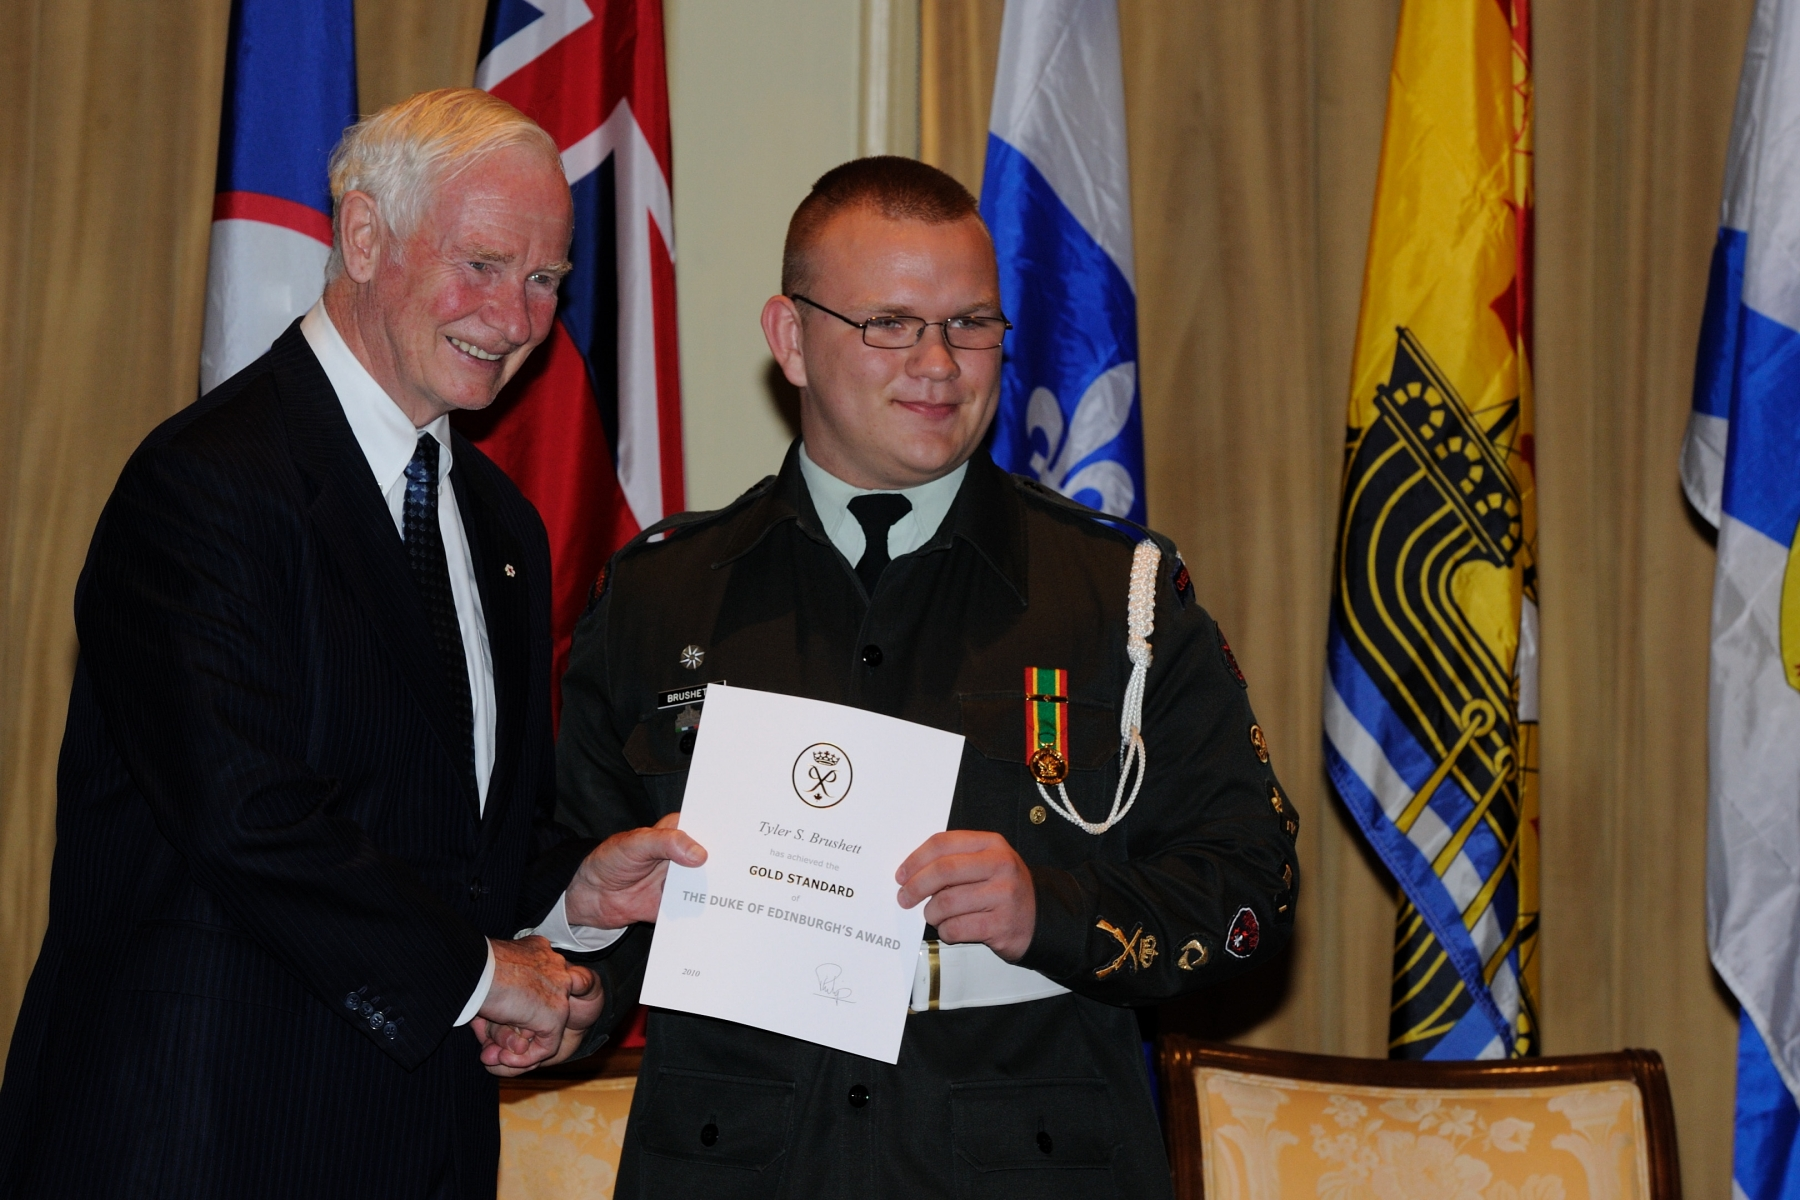 The Duke of Edinburgh Award is a self-development program available to all young people between the ages of 14-25. The award encourages youth to be active, participate in new activities, and to pursue current interests in four different ways: Community Service, Skills Development, Physical Fitness, and Expeditions and Exploration. Gold Award participants must also complete a Residential Project consisting of voluntary service.